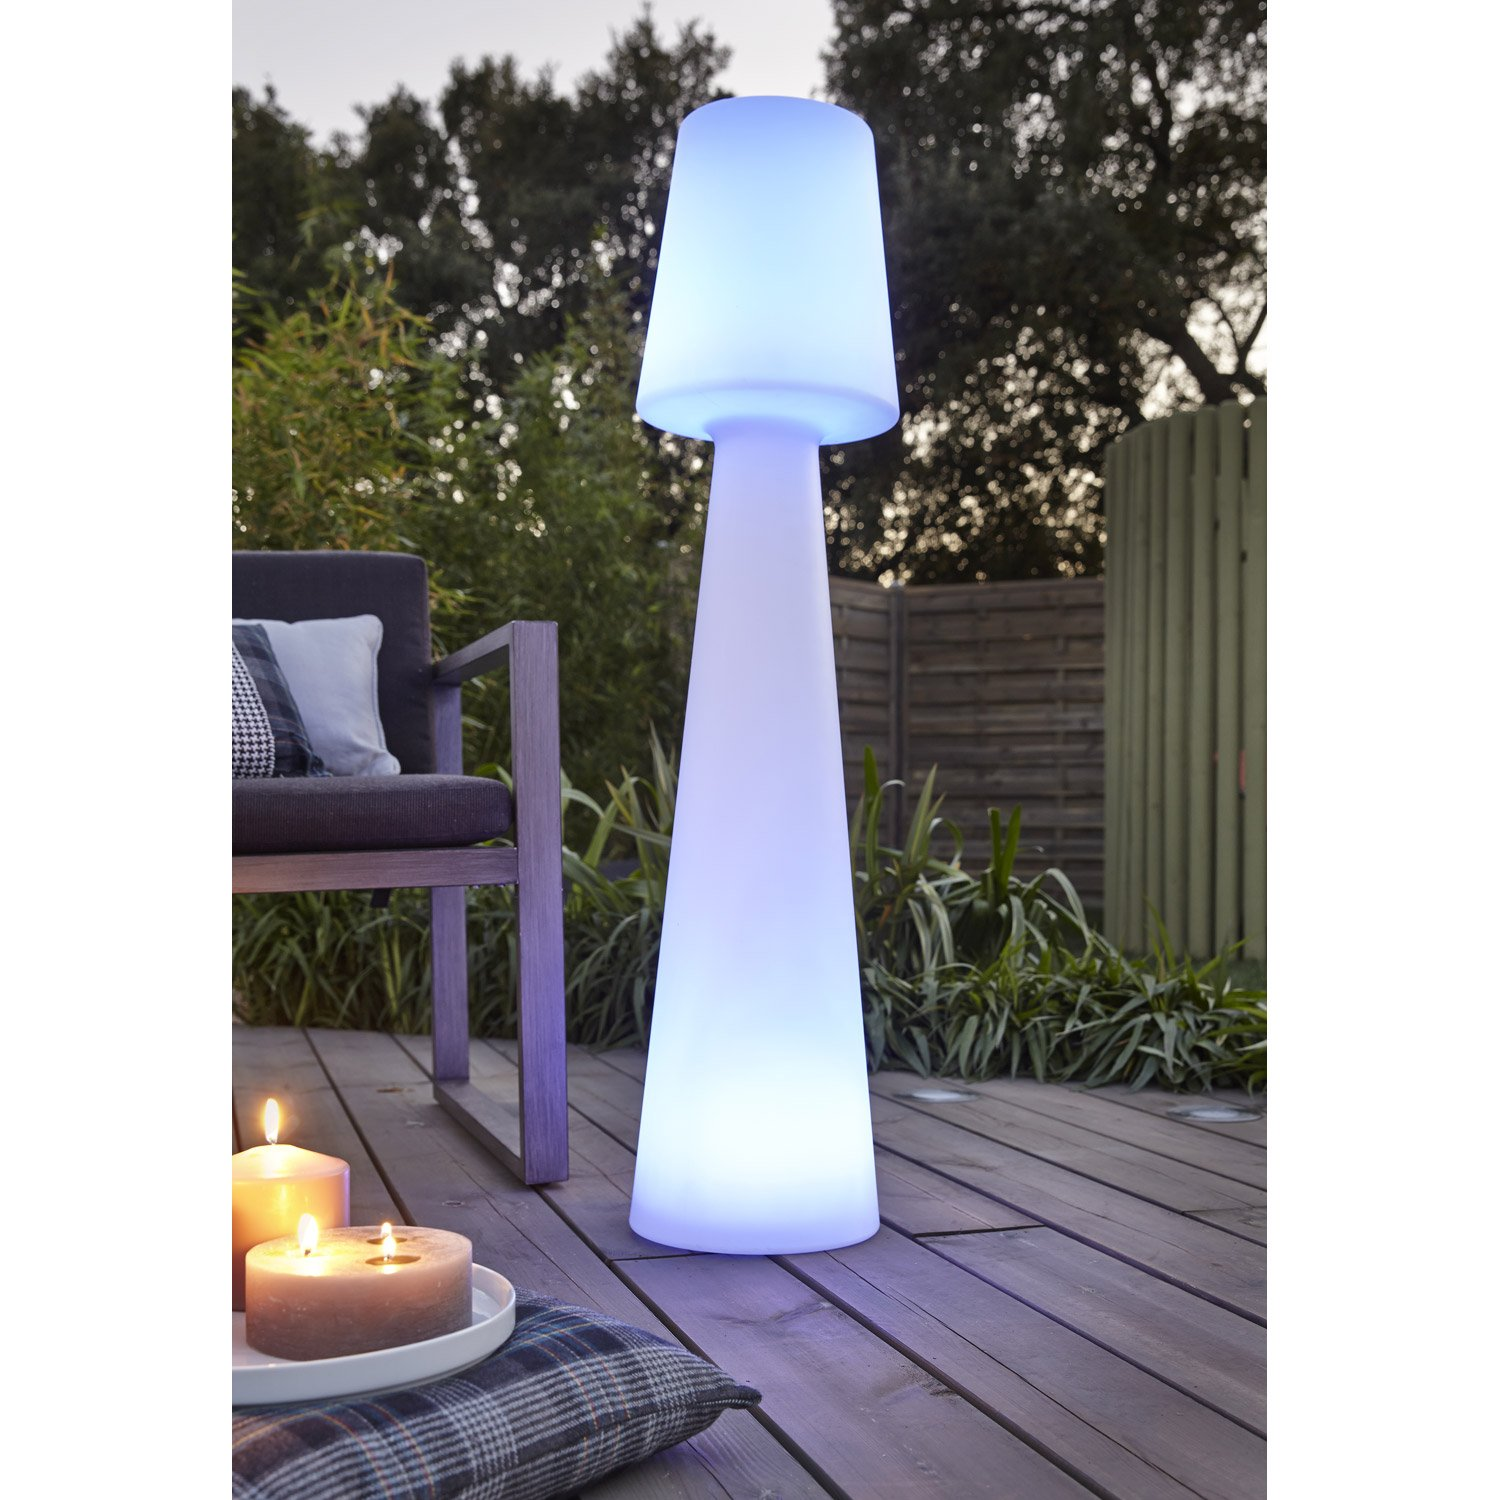 Eclairage Terrasse Led Solaire Lampadaire Extérieur Led Eclairage Extérieur